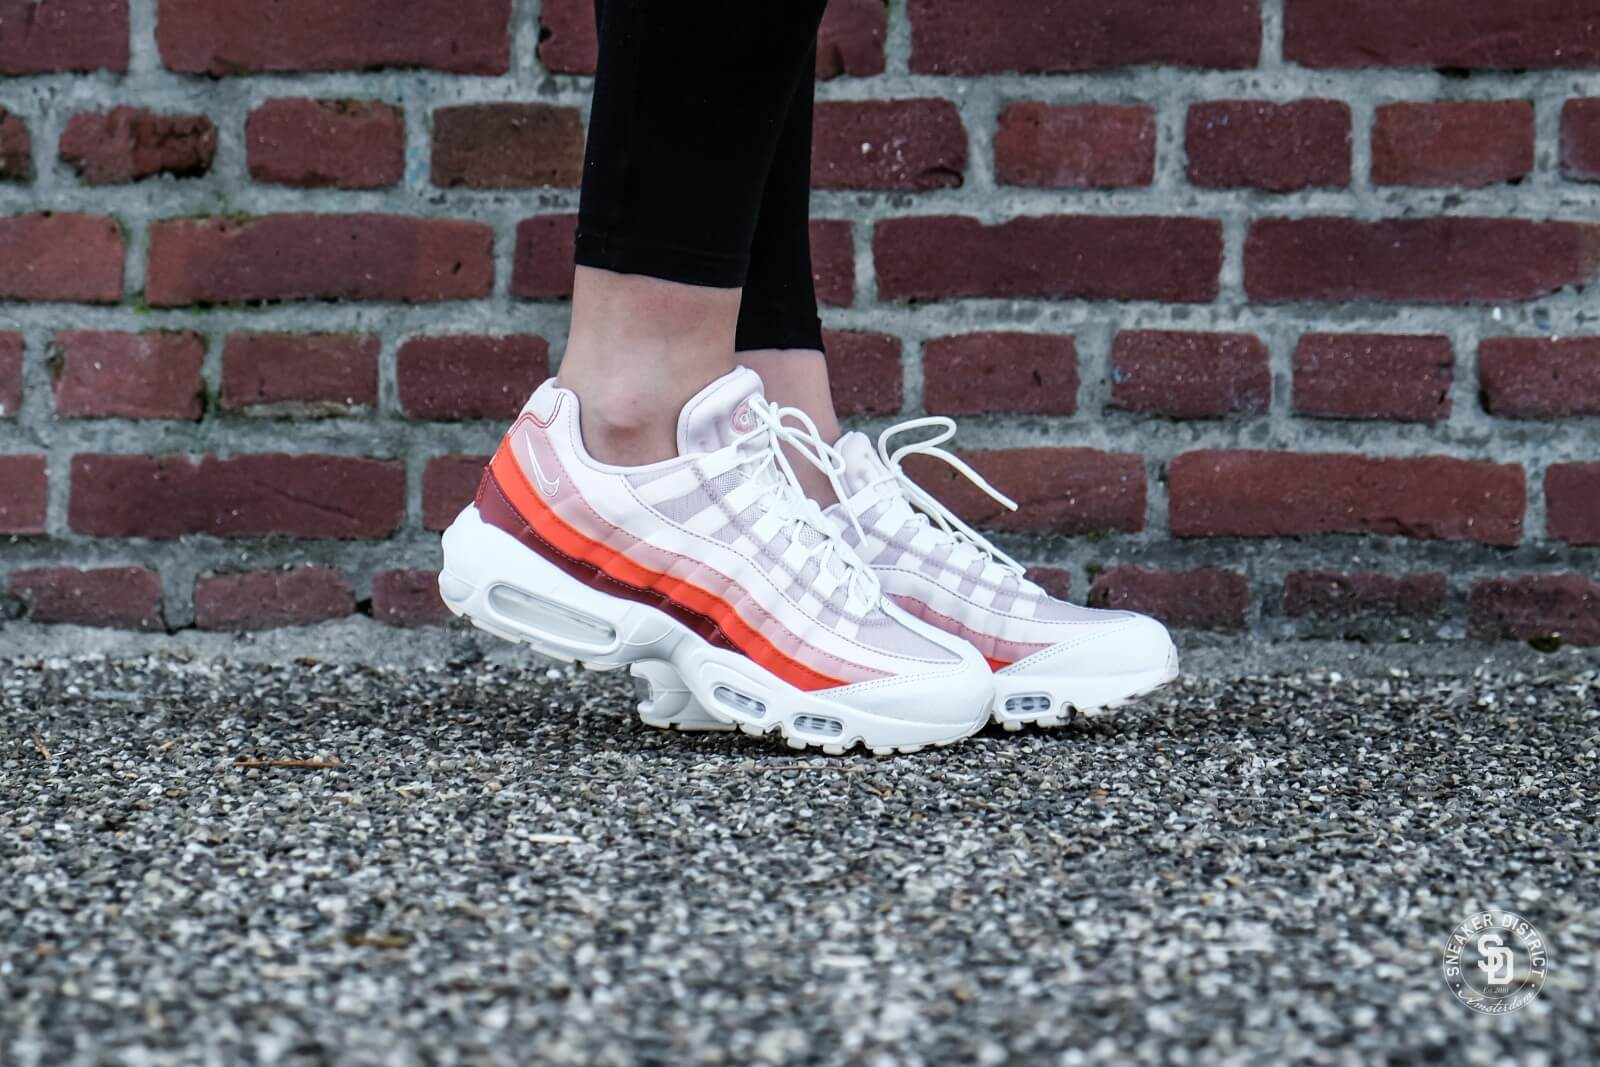 Nike Women's Air Max 95 Barely Rose/Coral Stardust